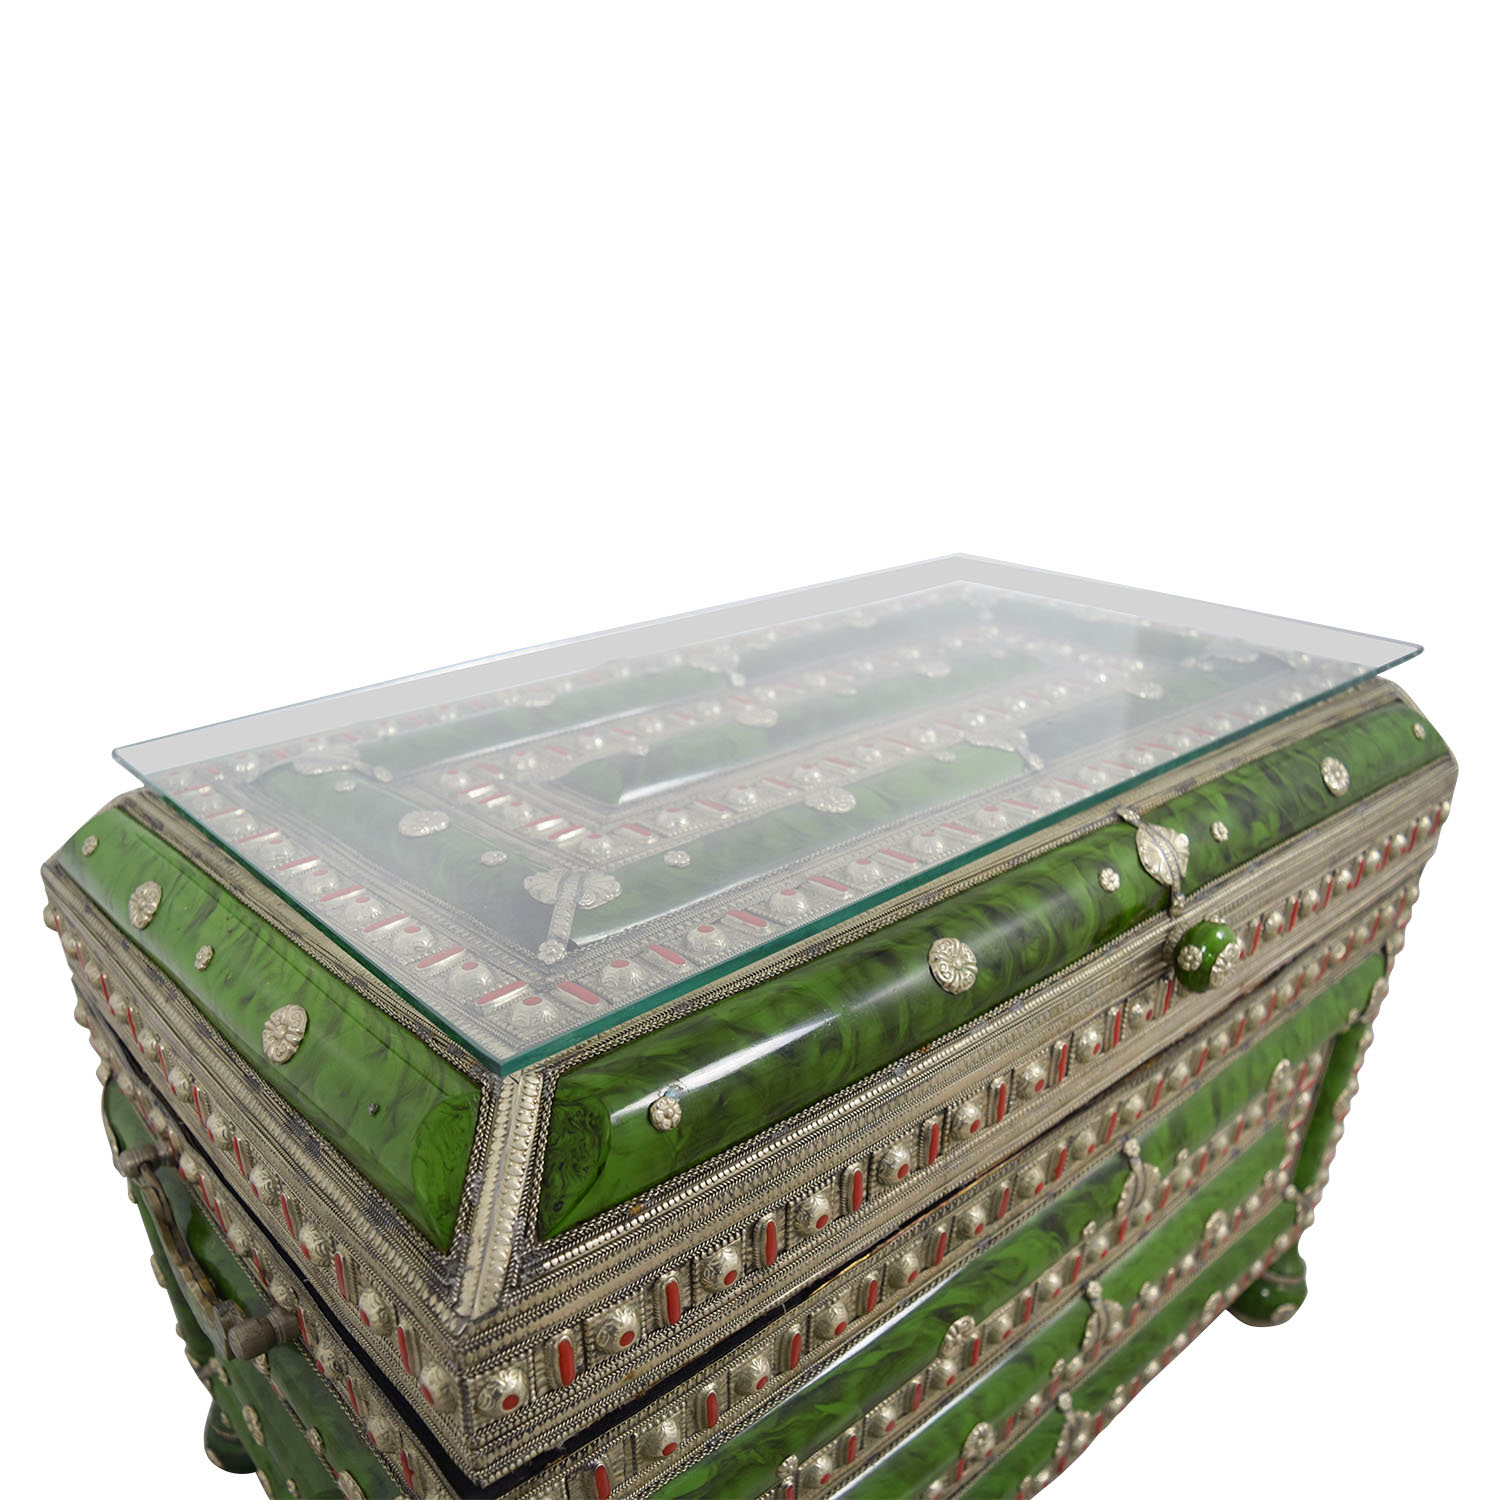 Antique Morroccan Precious Jewel Trunk and Table nyc